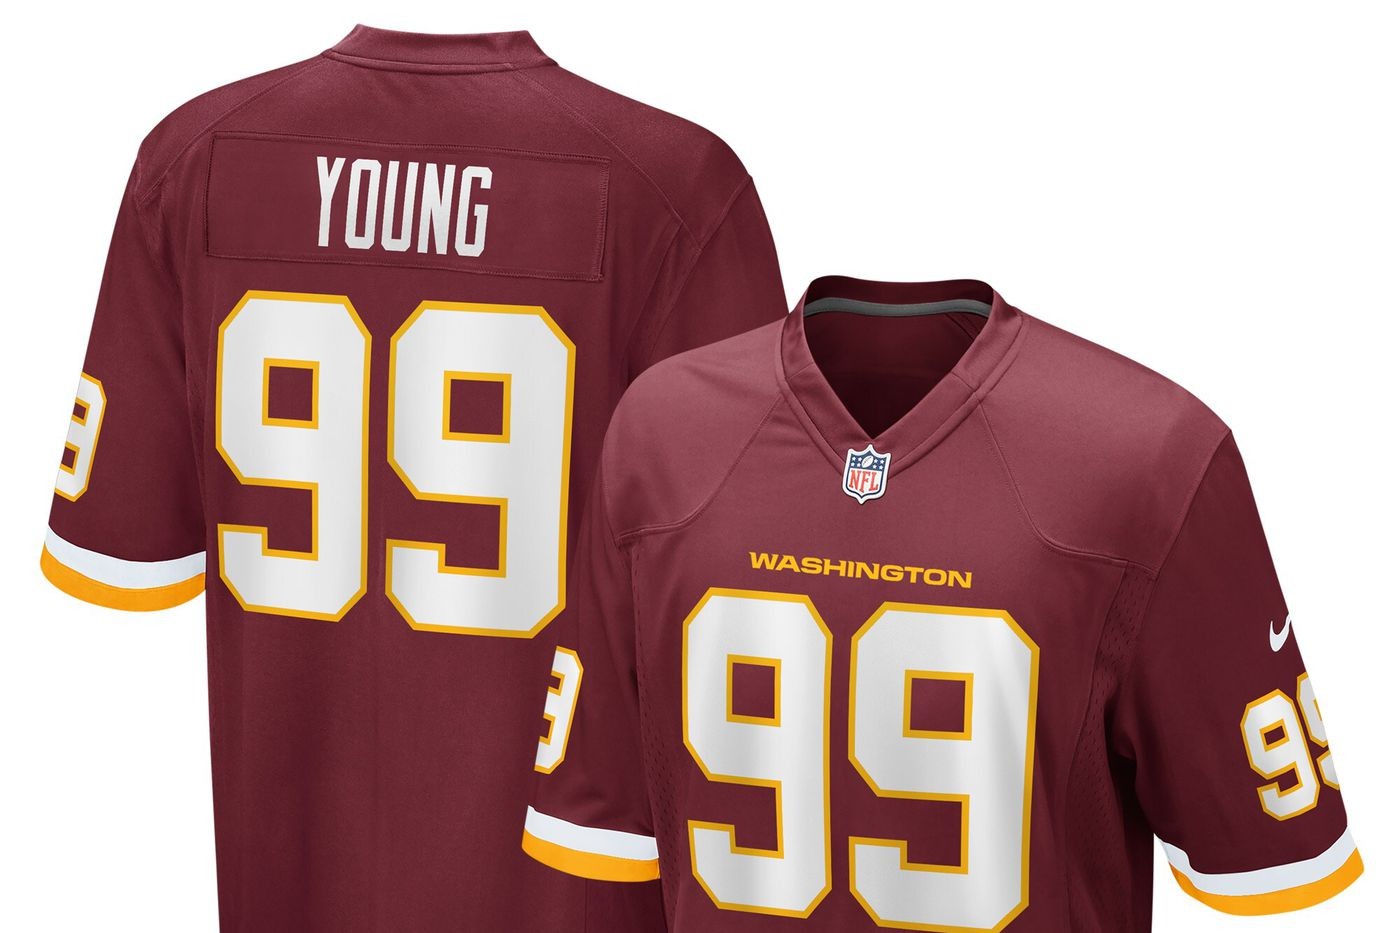 The Washington Football Team's Nike jerseys have arrived! - Hogs Haven